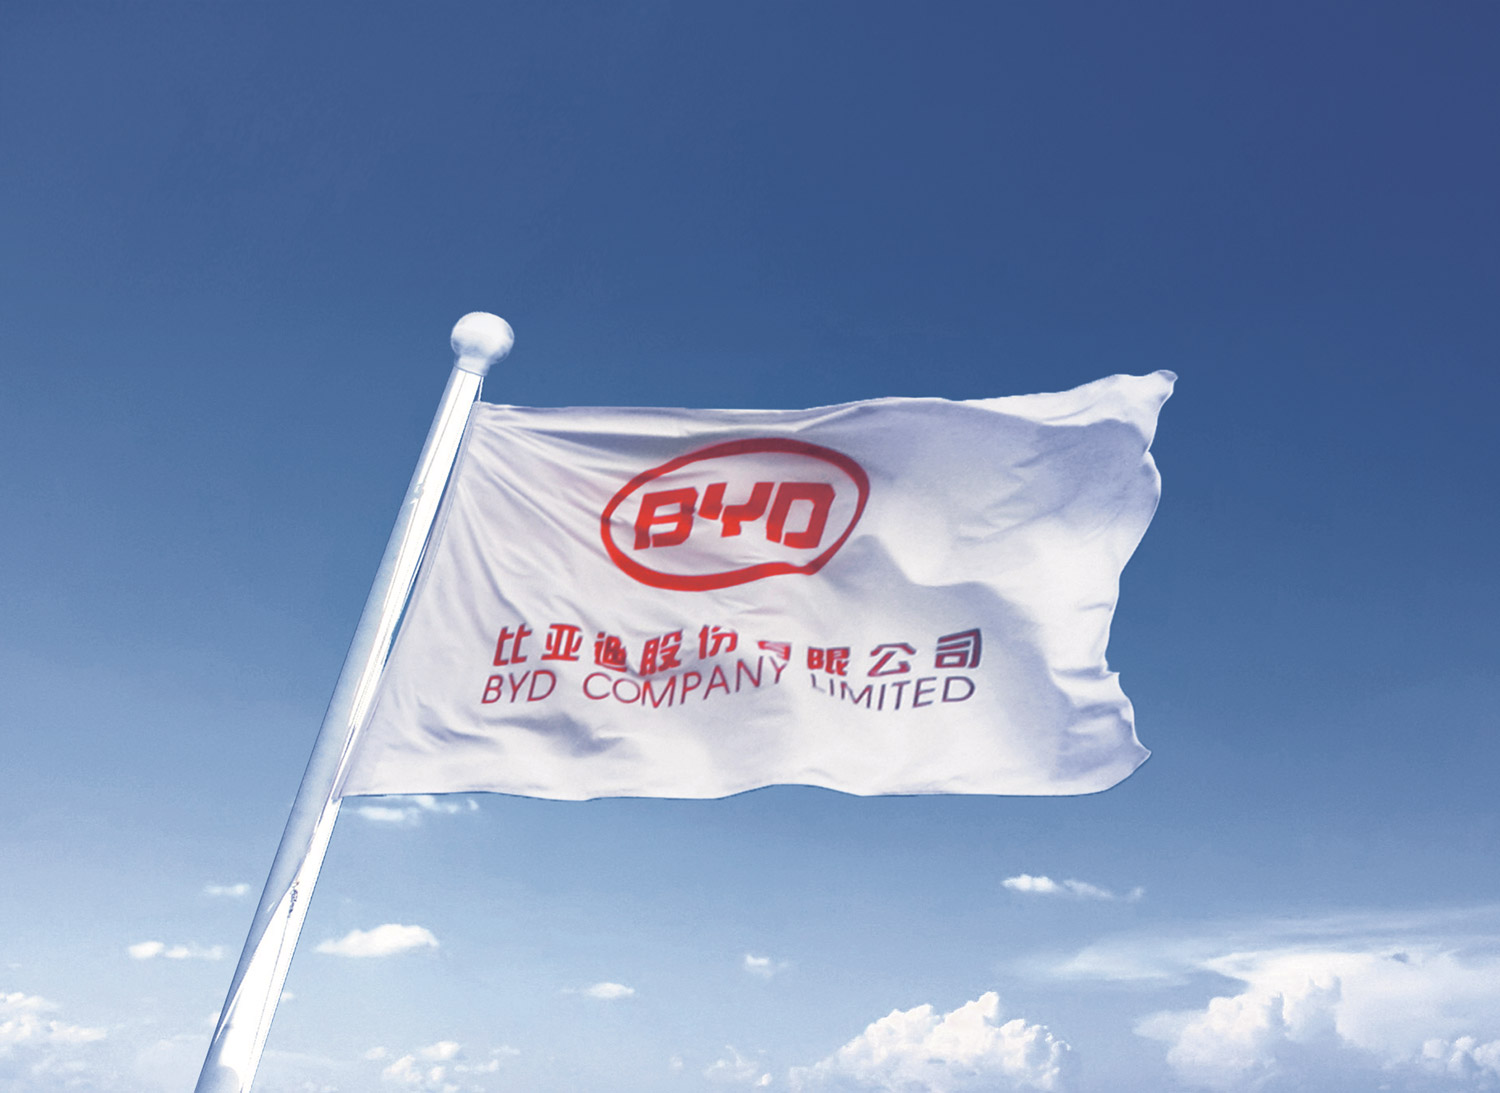 About BYD Group